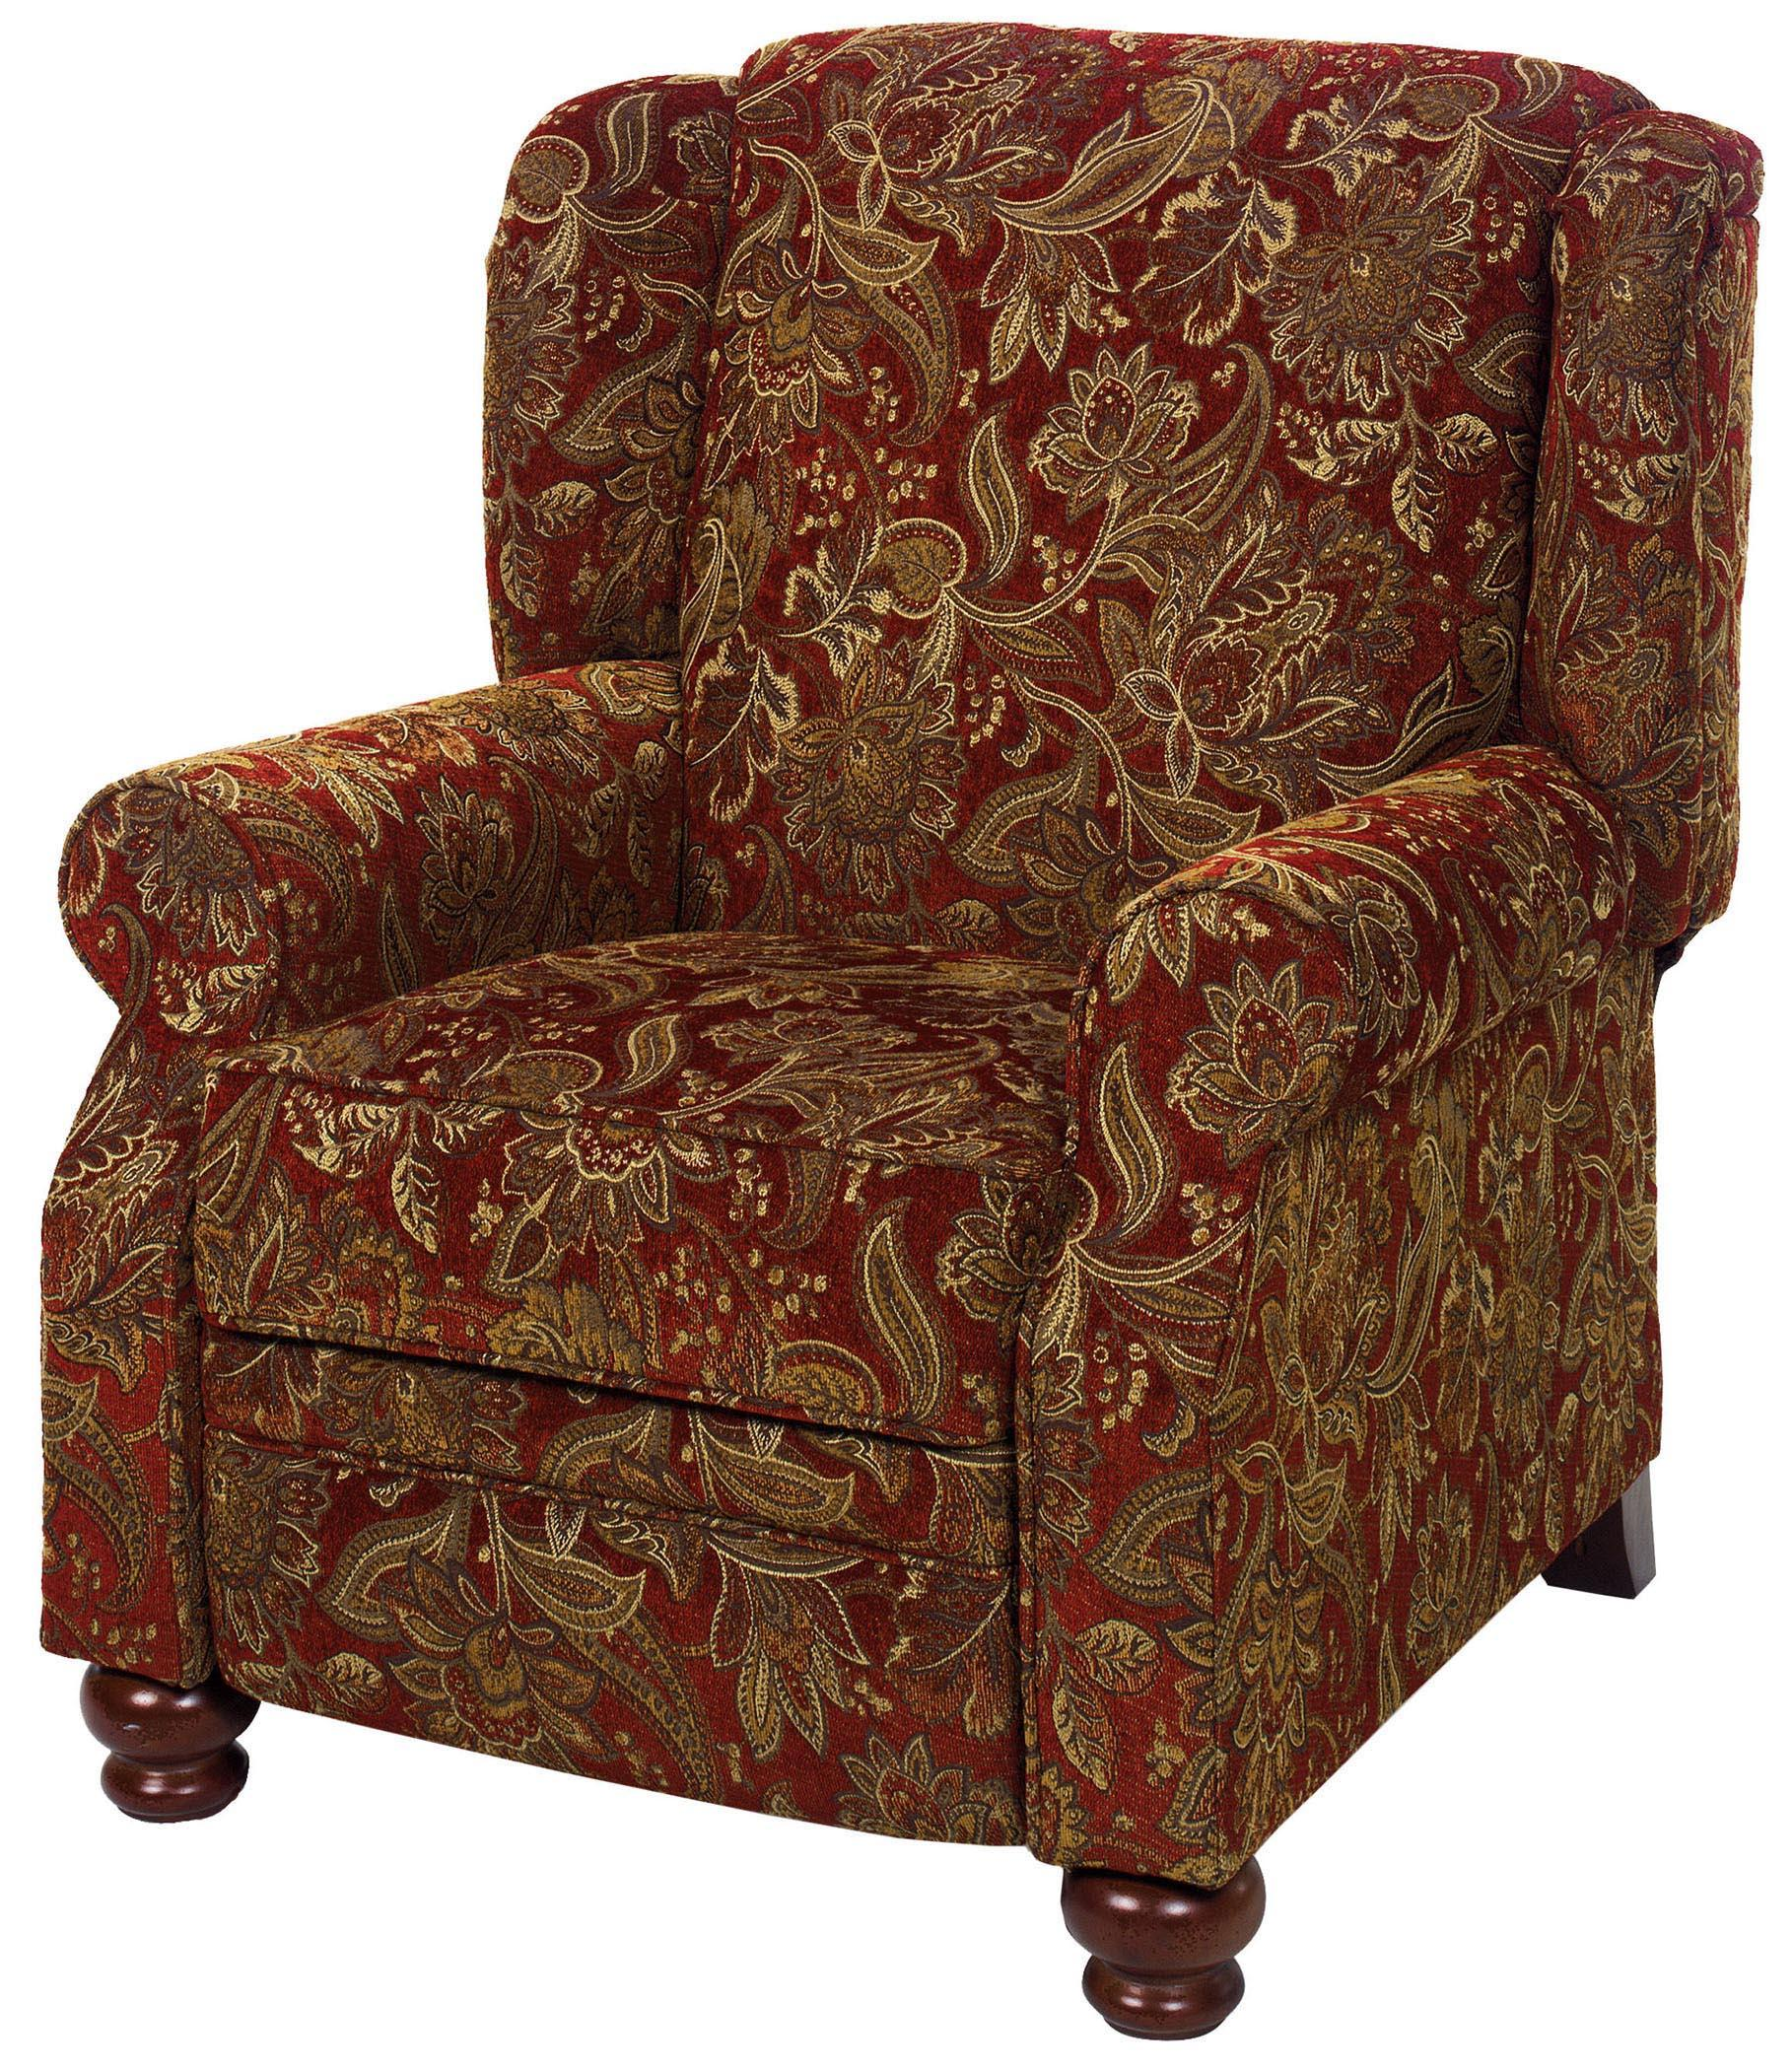 wood recliner chair playseat office traditional high leg with turned feet by